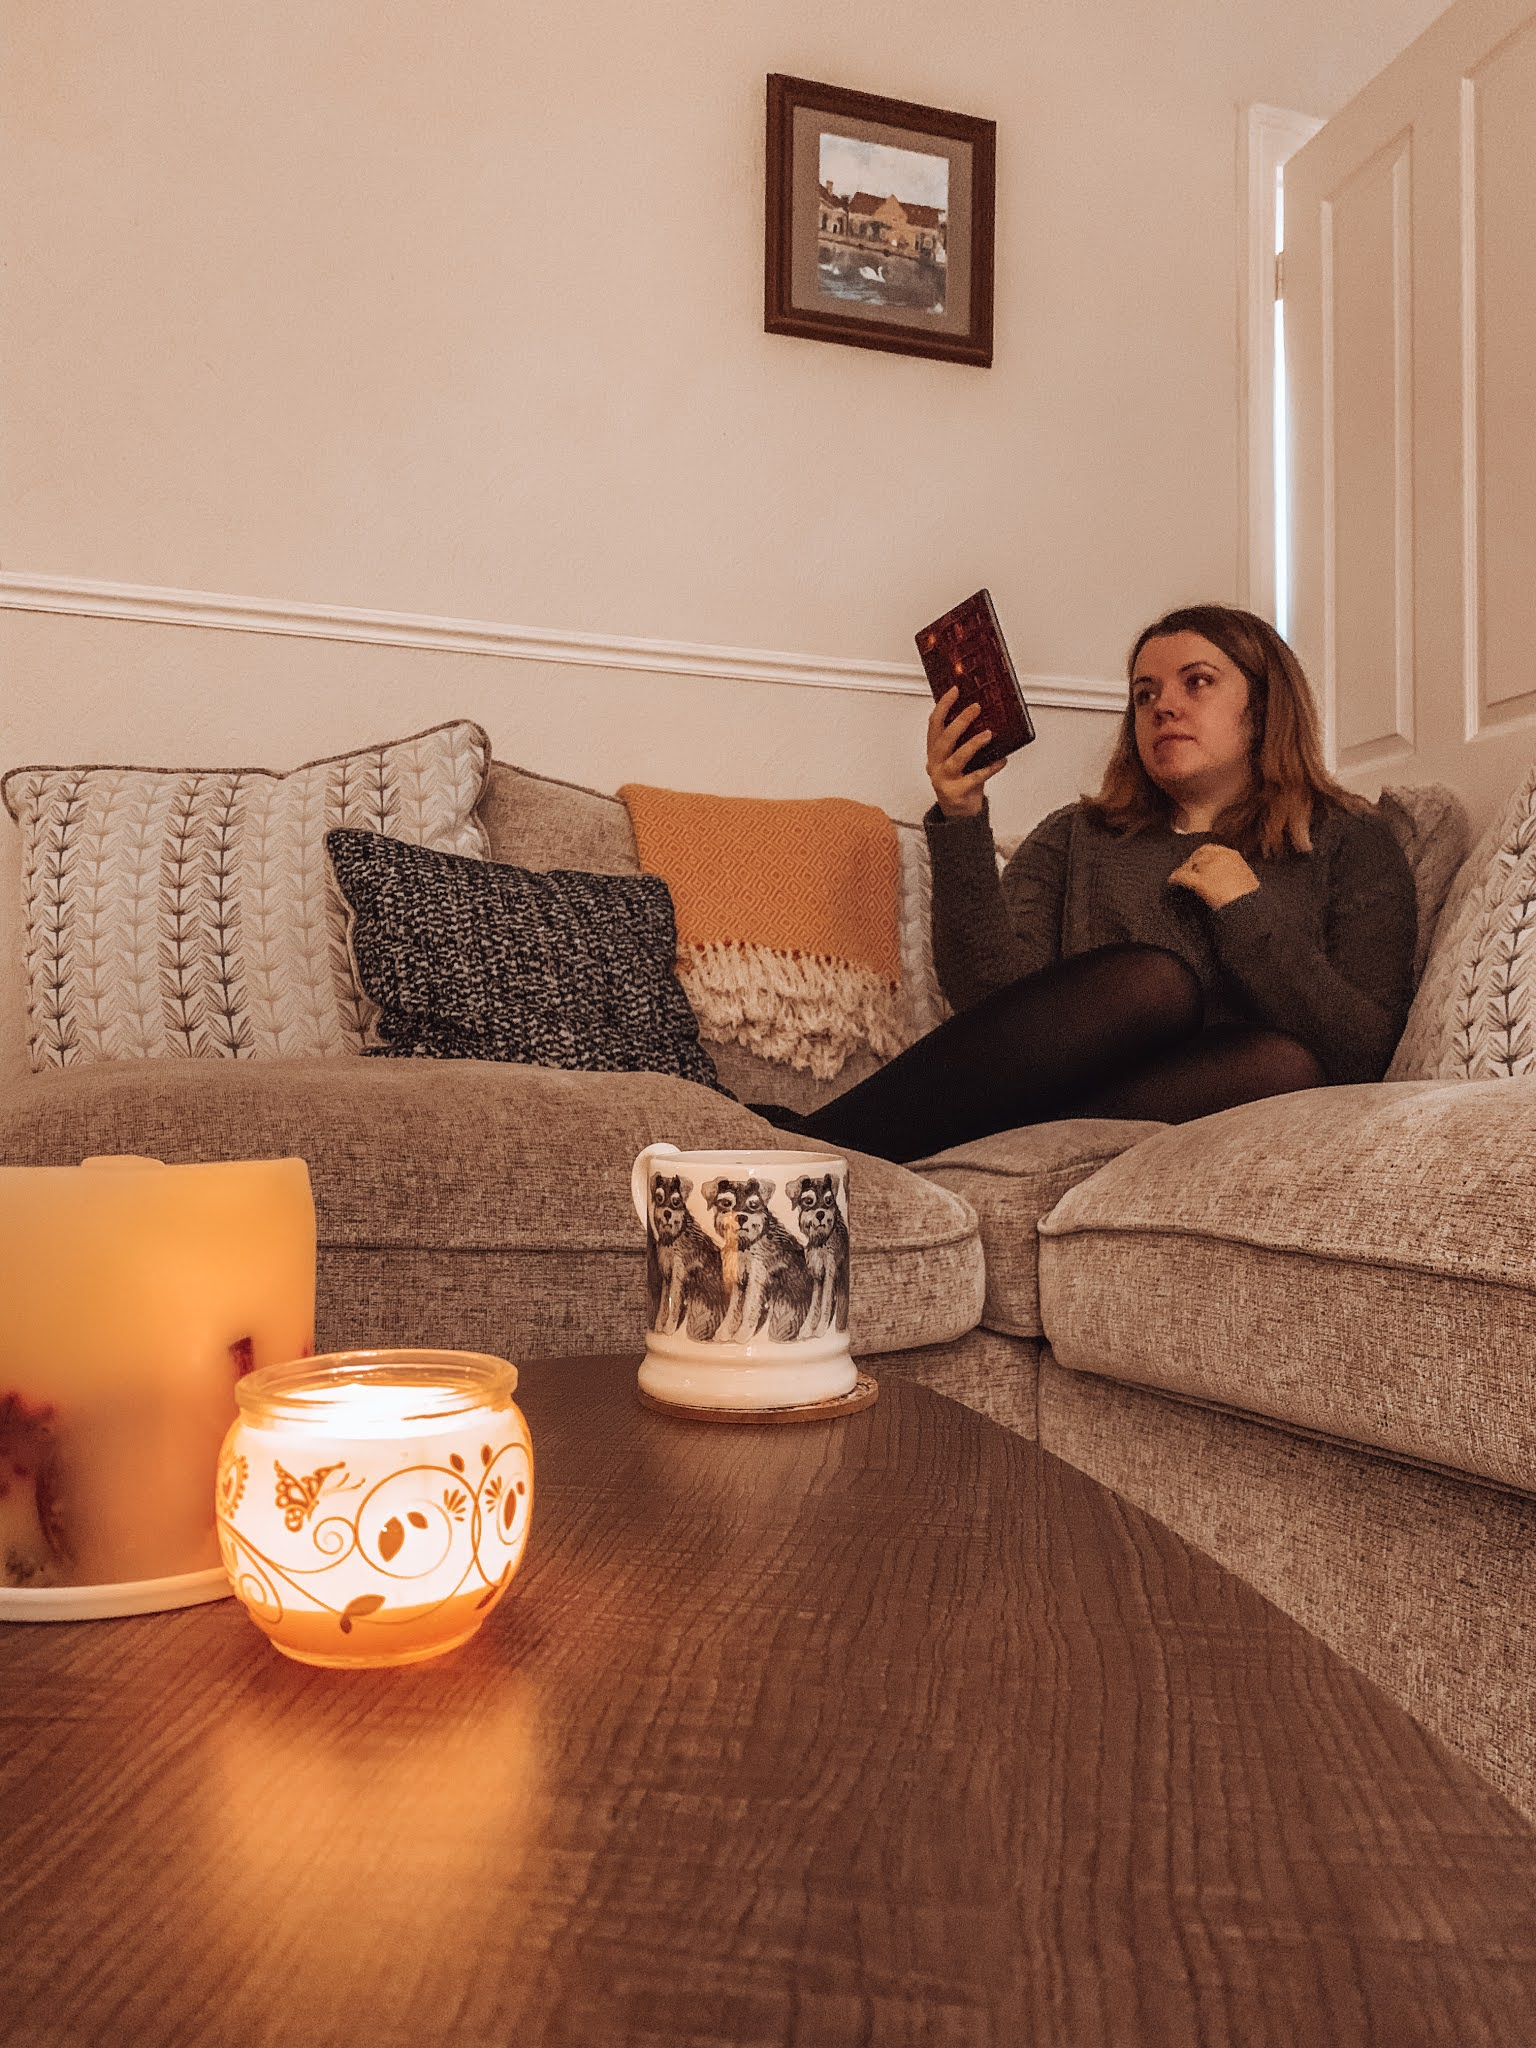 In the foreground is a walnut coffee table with two candles lit, and a mug of tea. Behind this Jess sits on a cream/grey speckled sofa, featuring lots of cushions and an orange tasseled blanket. Jess is holding her kindle and wearing a green knitted jumper over a skirt and tights.